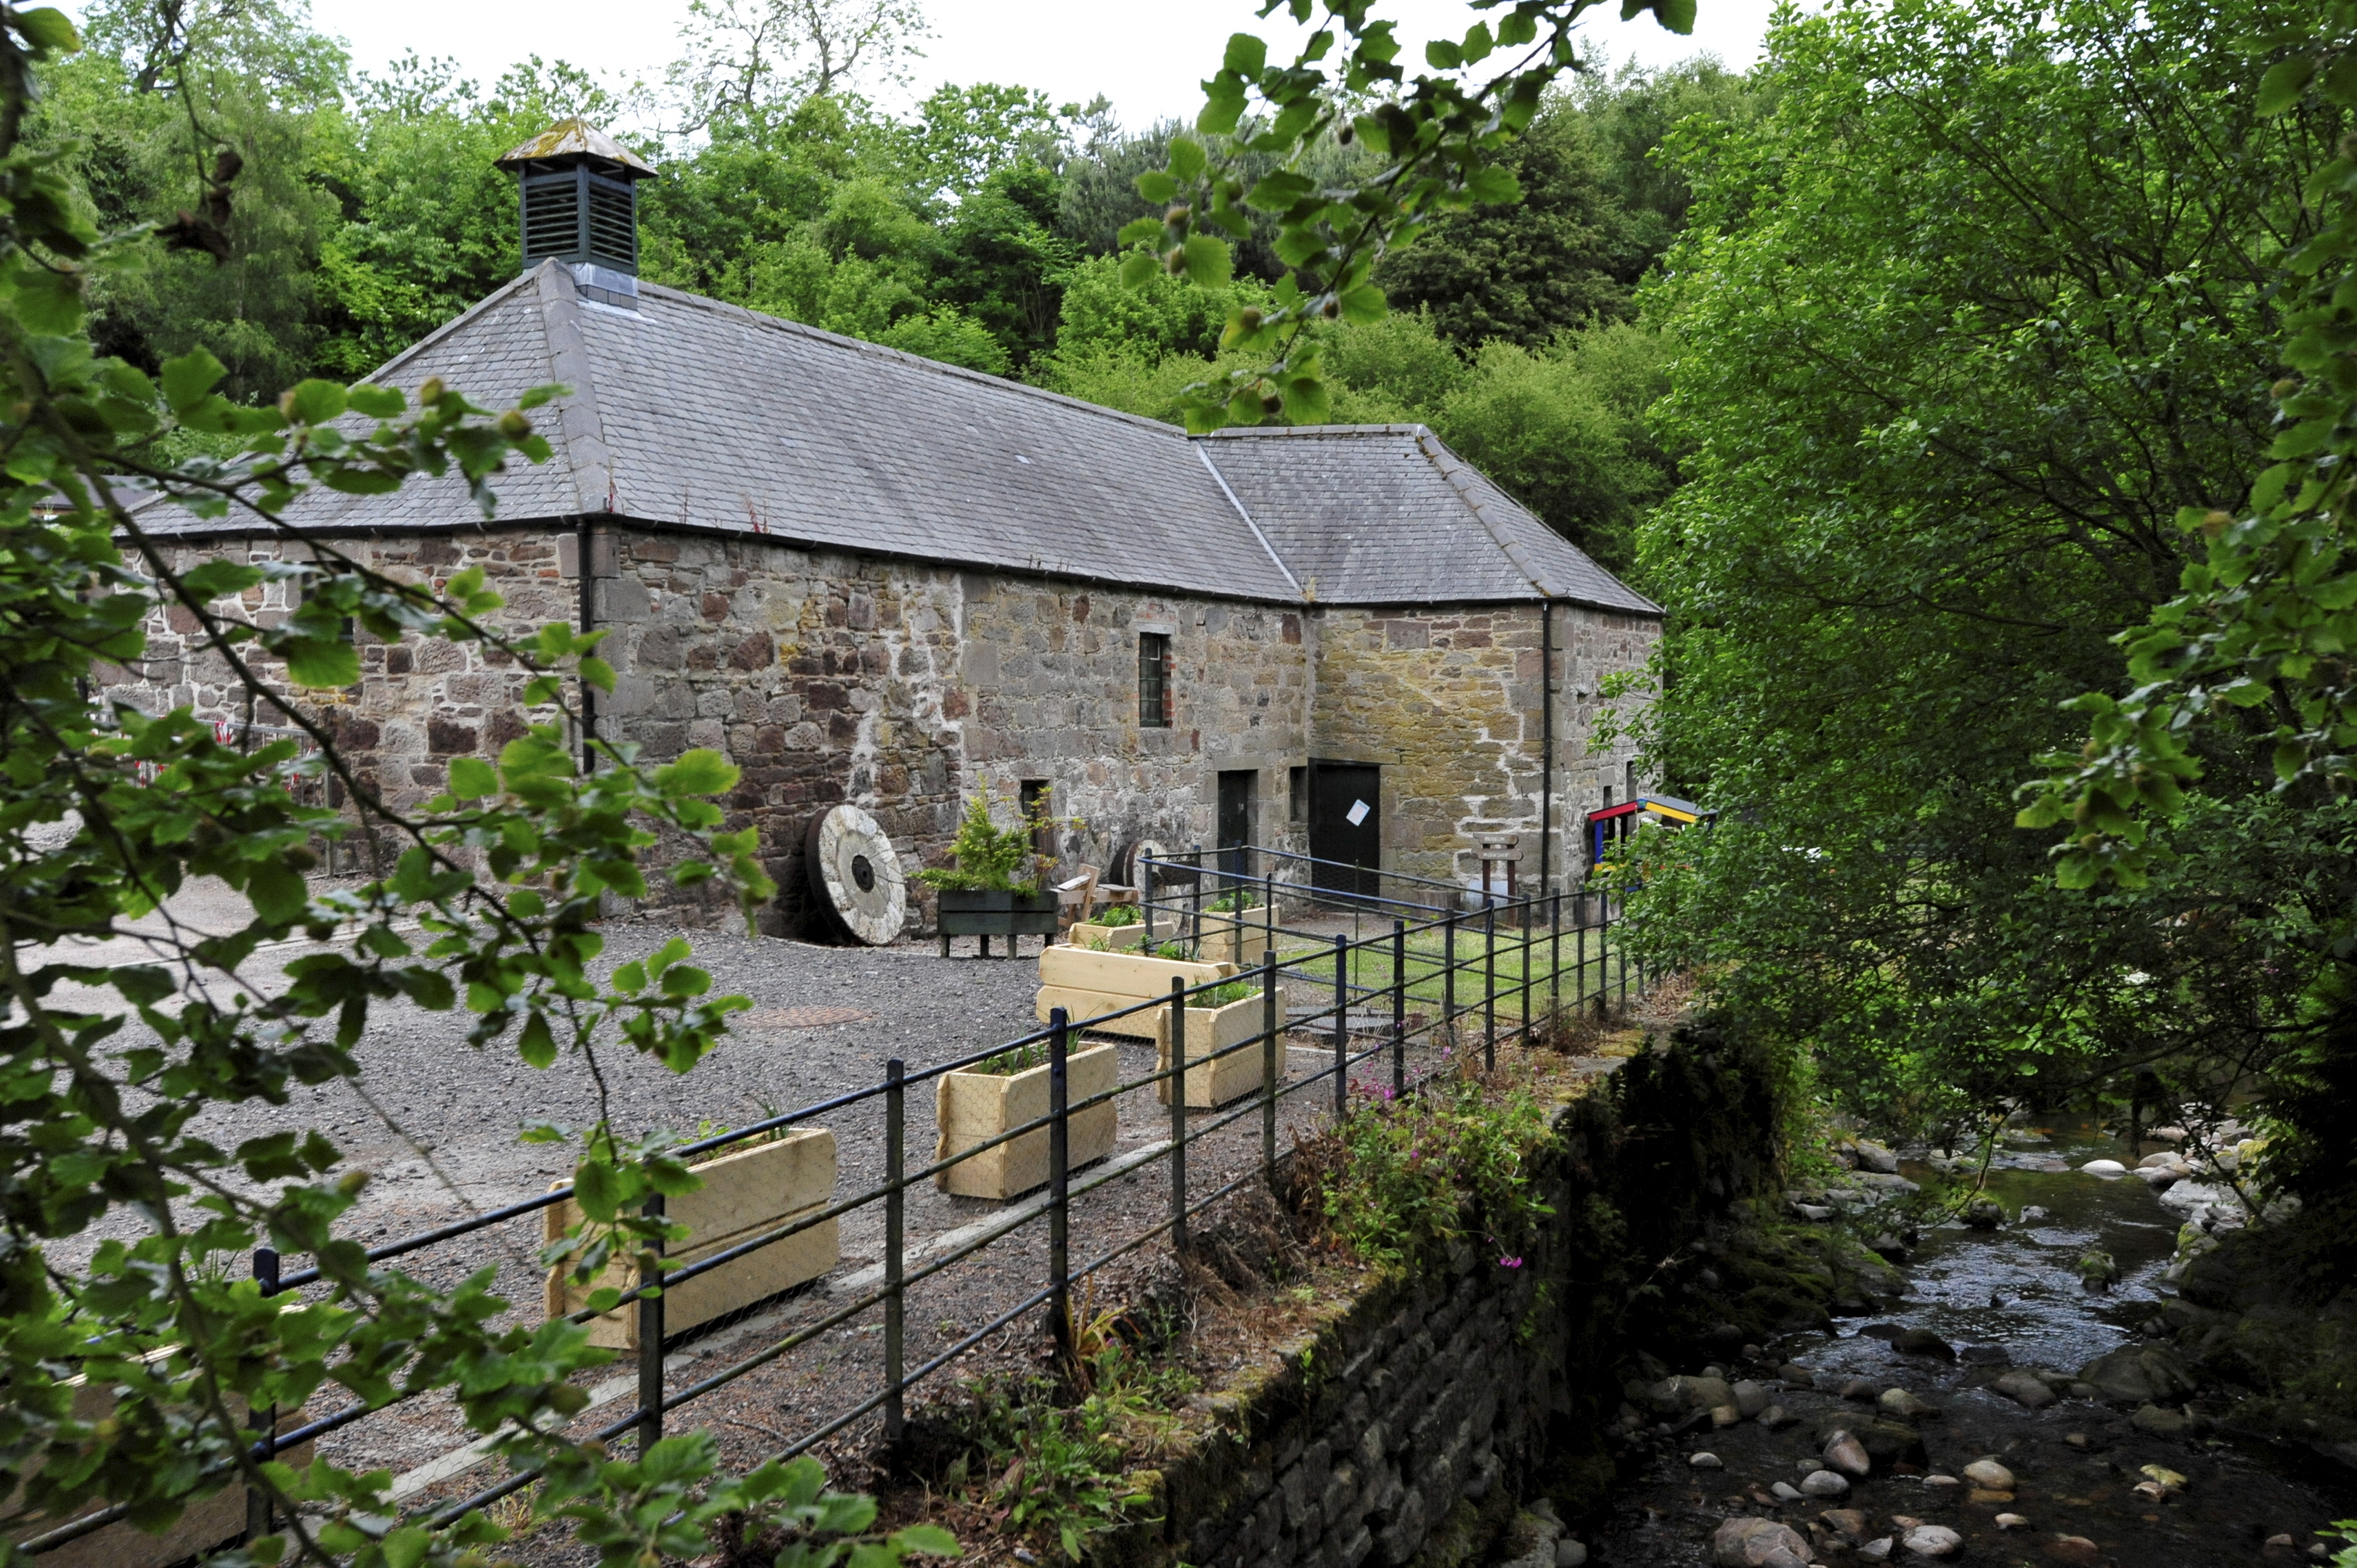 Councillors have been advised to agree plans which would see the Mill of Benholm restored.